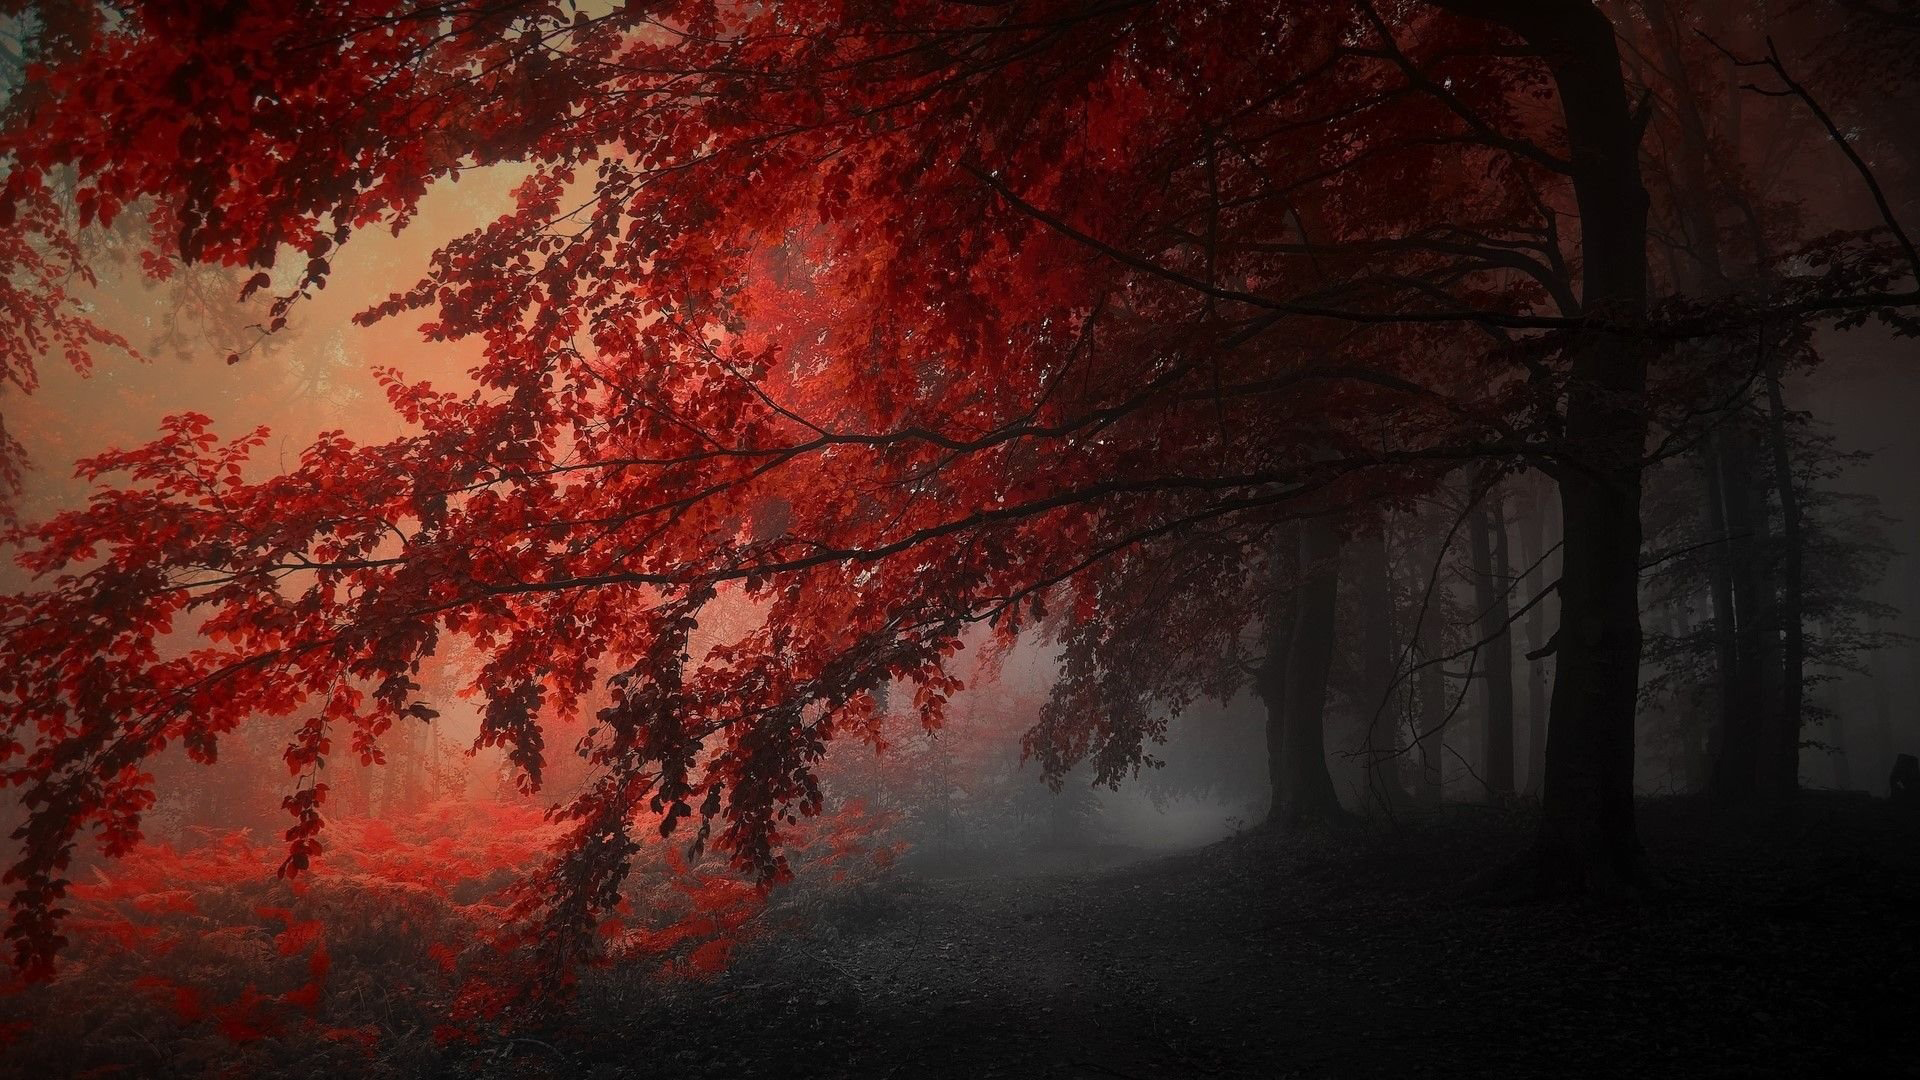 Tons of awesome orange aesthetic pc wallpapers to download for free. Red Autumn Trees In The Forest HD Dark Aesthetic ...